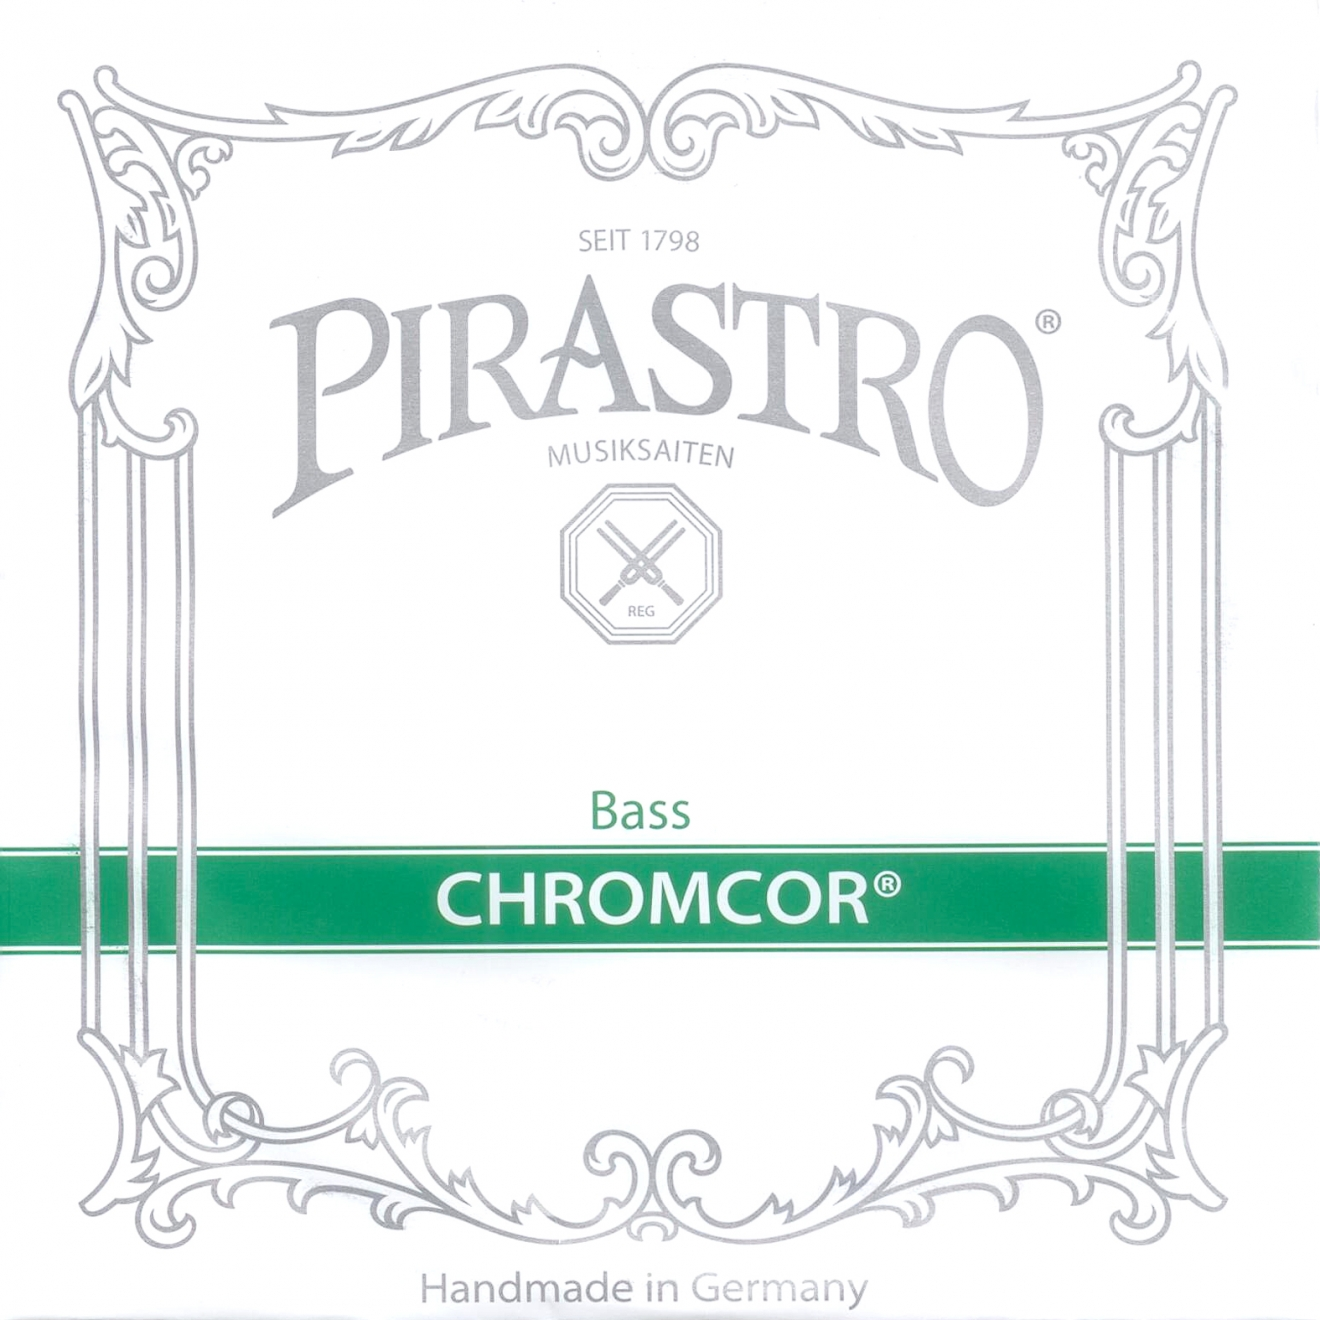 PIRASTRO Chormcor Bass E